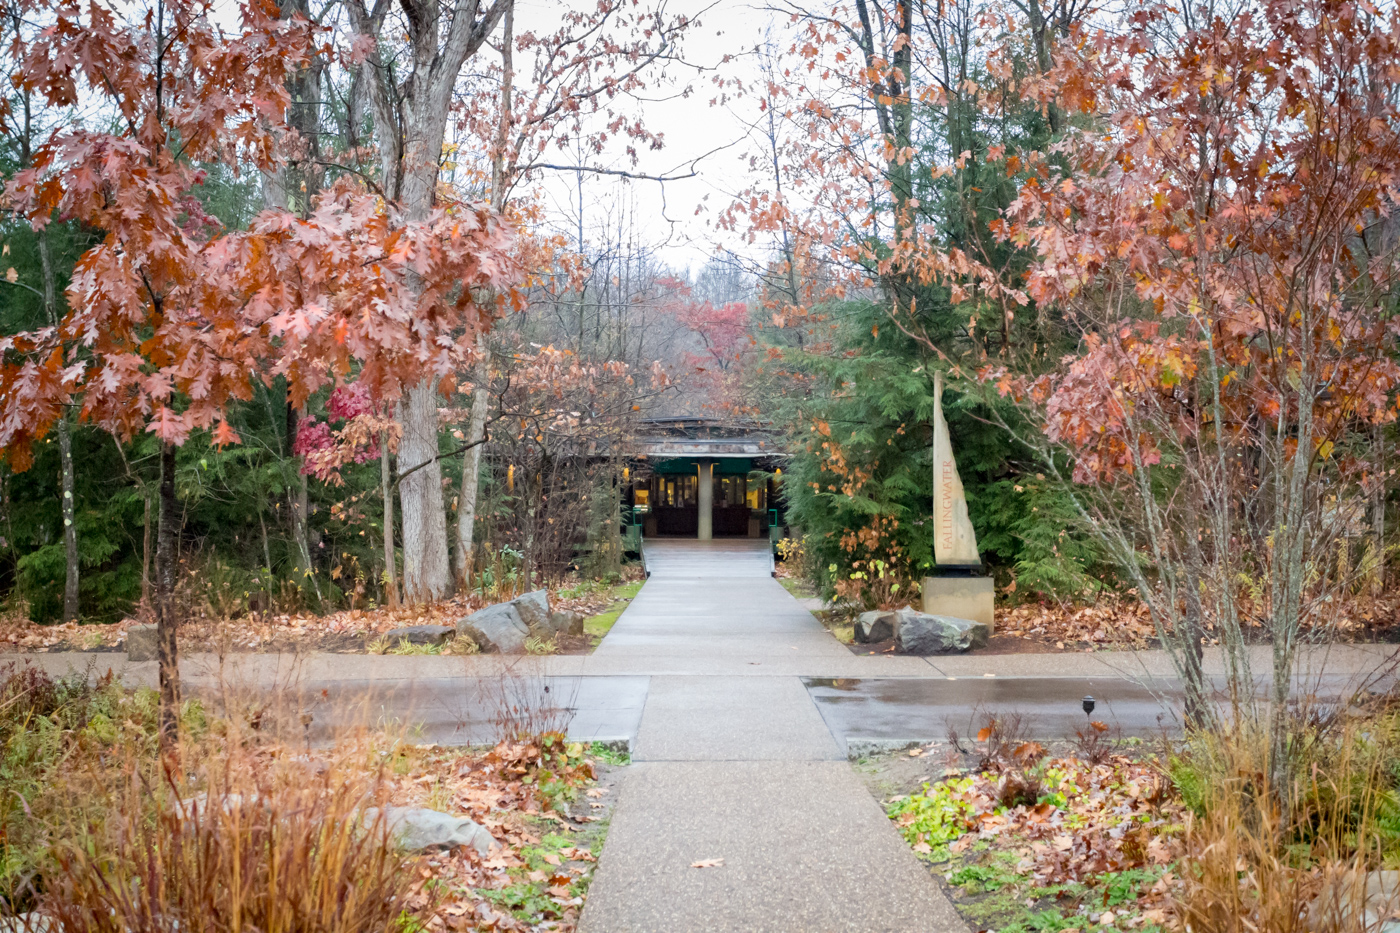 Entrance to Fallingwater